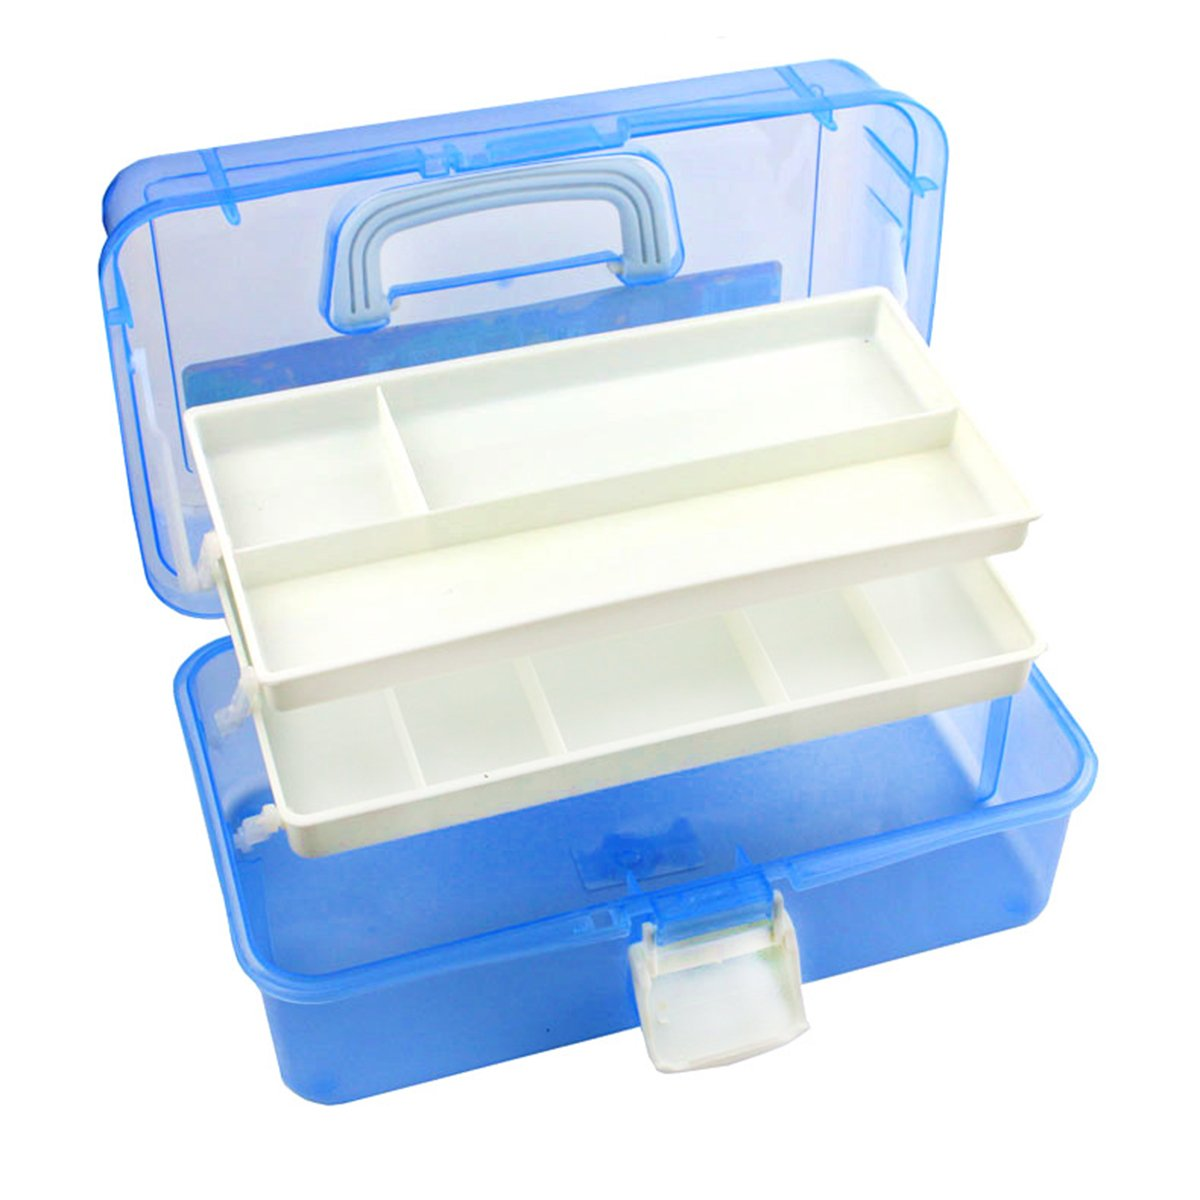 Tosnail 12-inch Plastic Art Supply Craft Storage Tool Box Container Case with Two Trays FBA_T-PlasticCraftBox-Blue